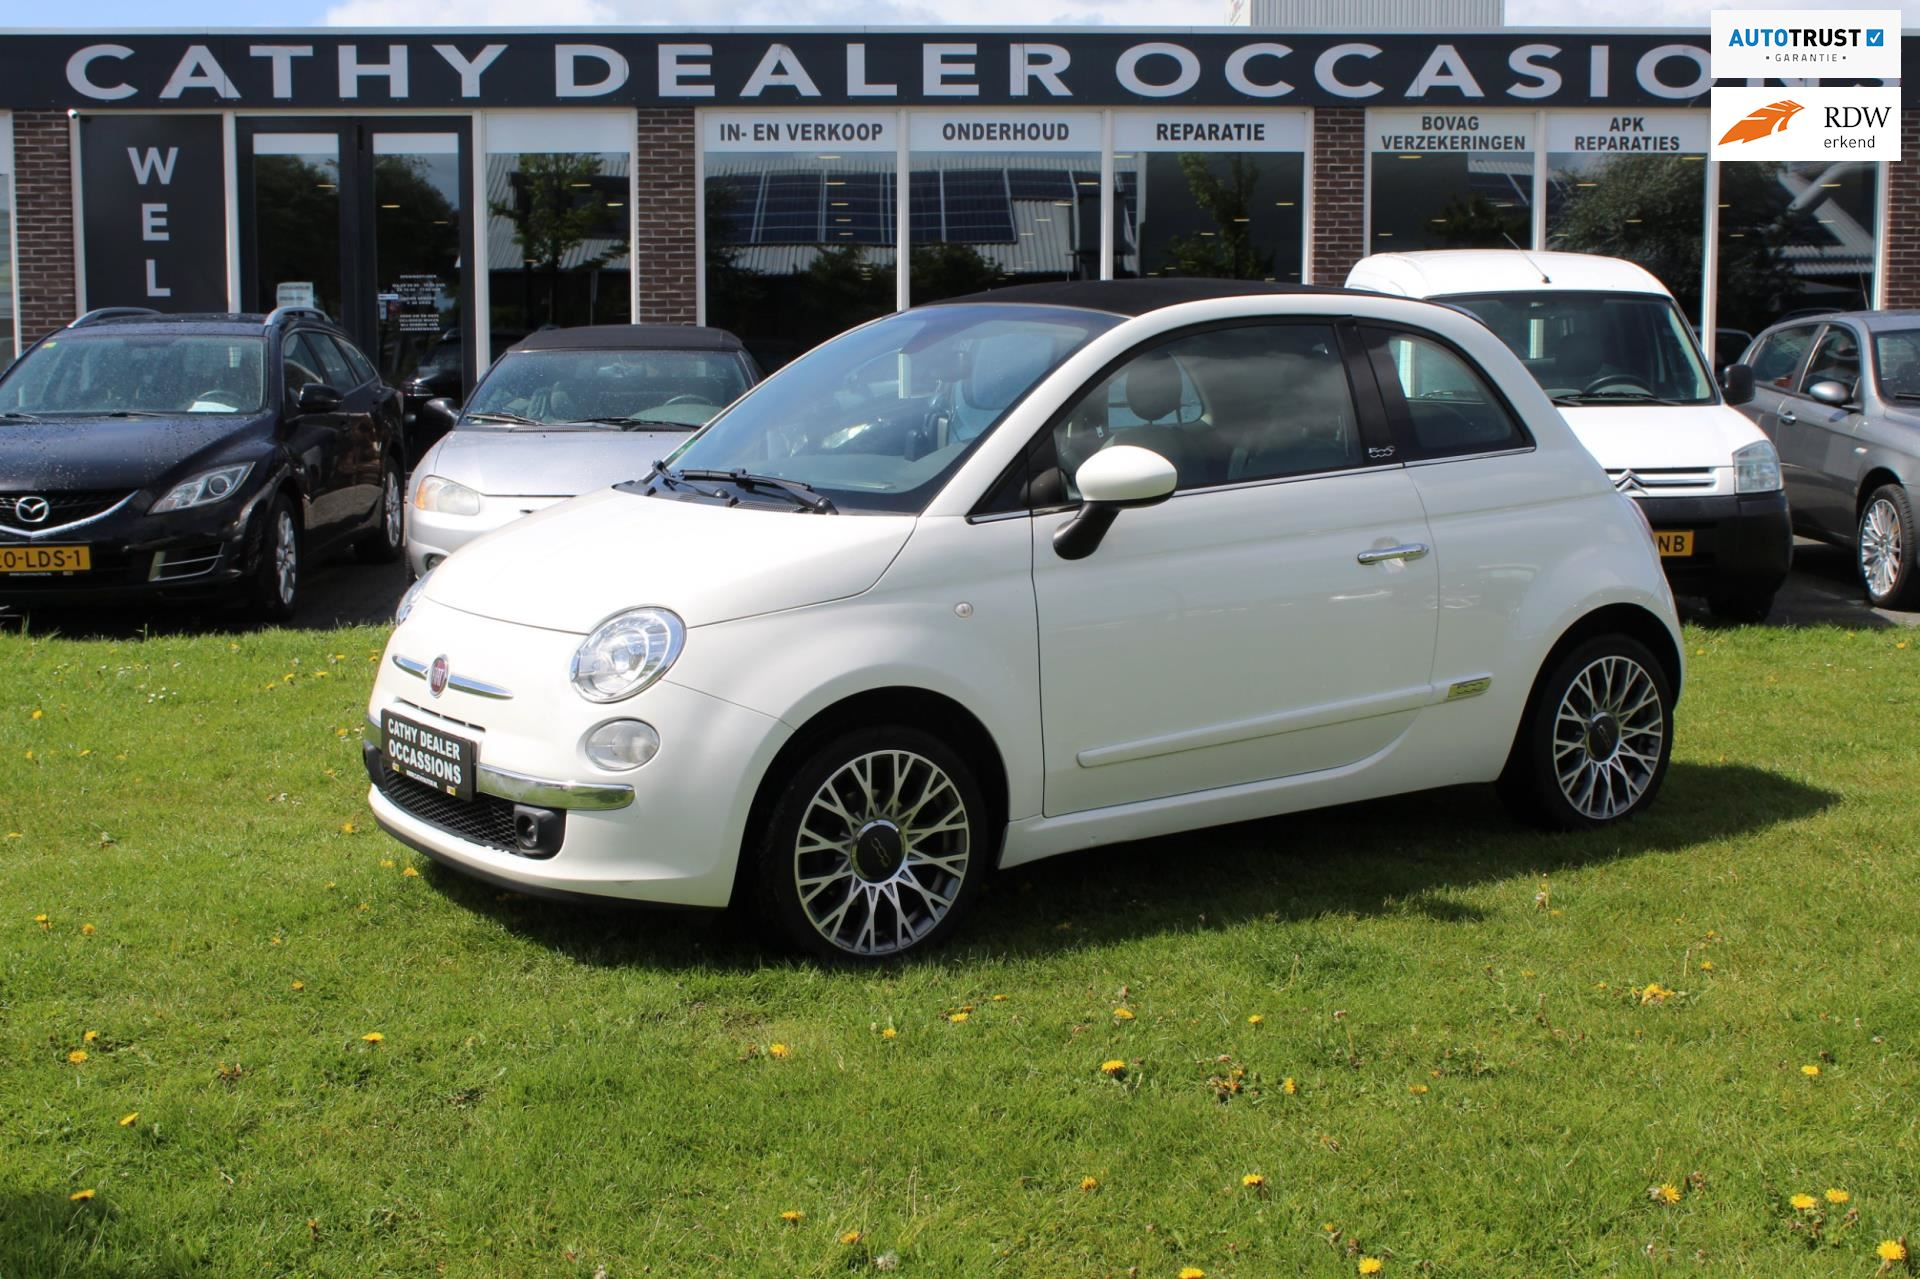 Fiat 500 C occasion - Cathy Dealer Occasions